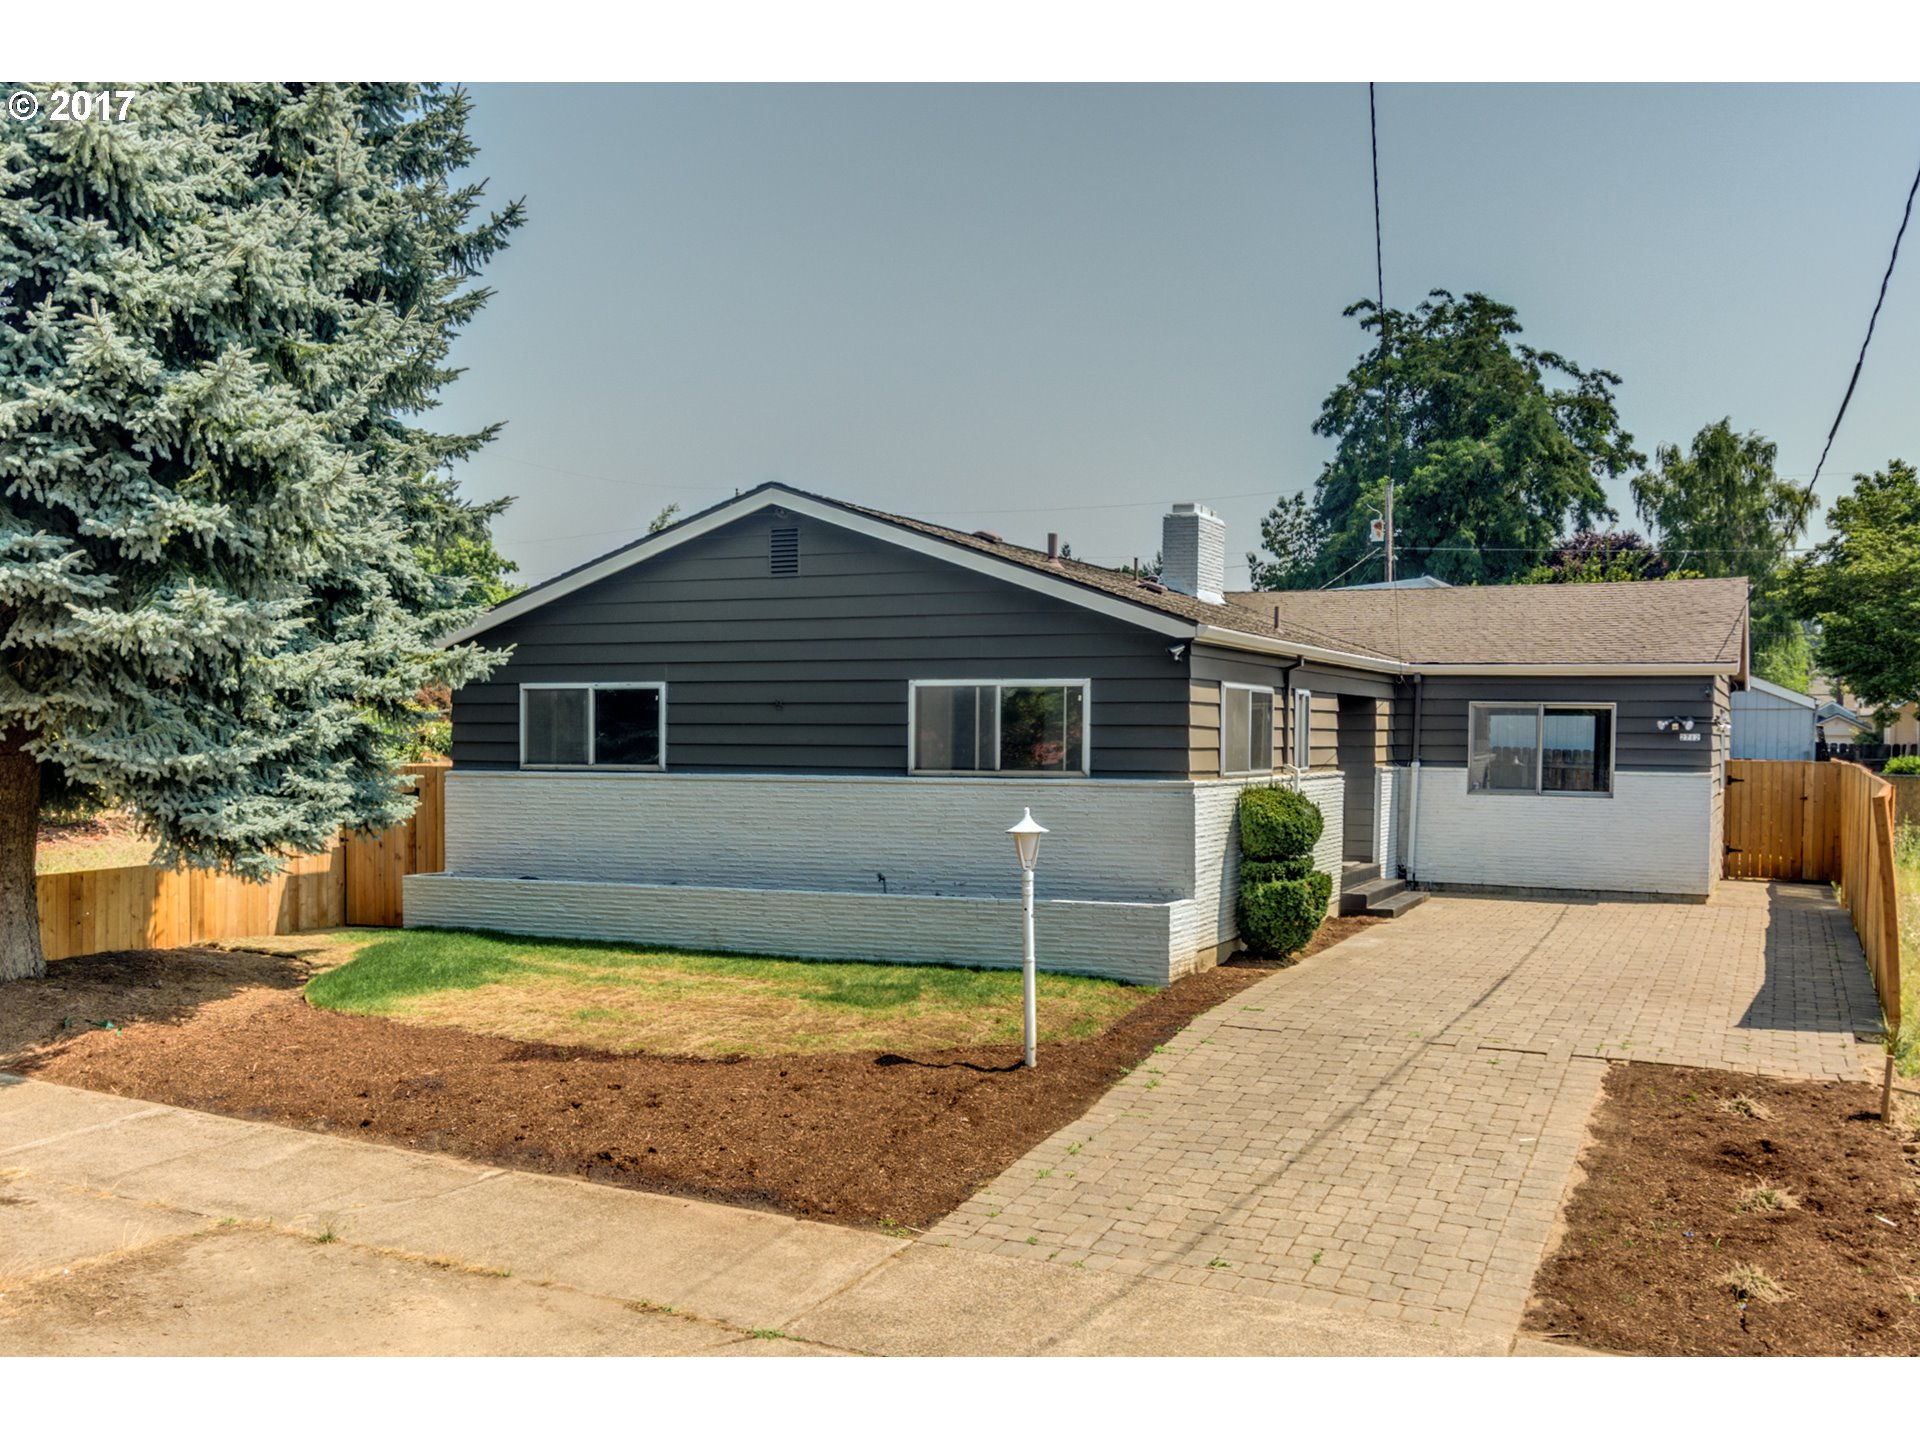 2712 SE 73RD AVE, Portland OR 97206